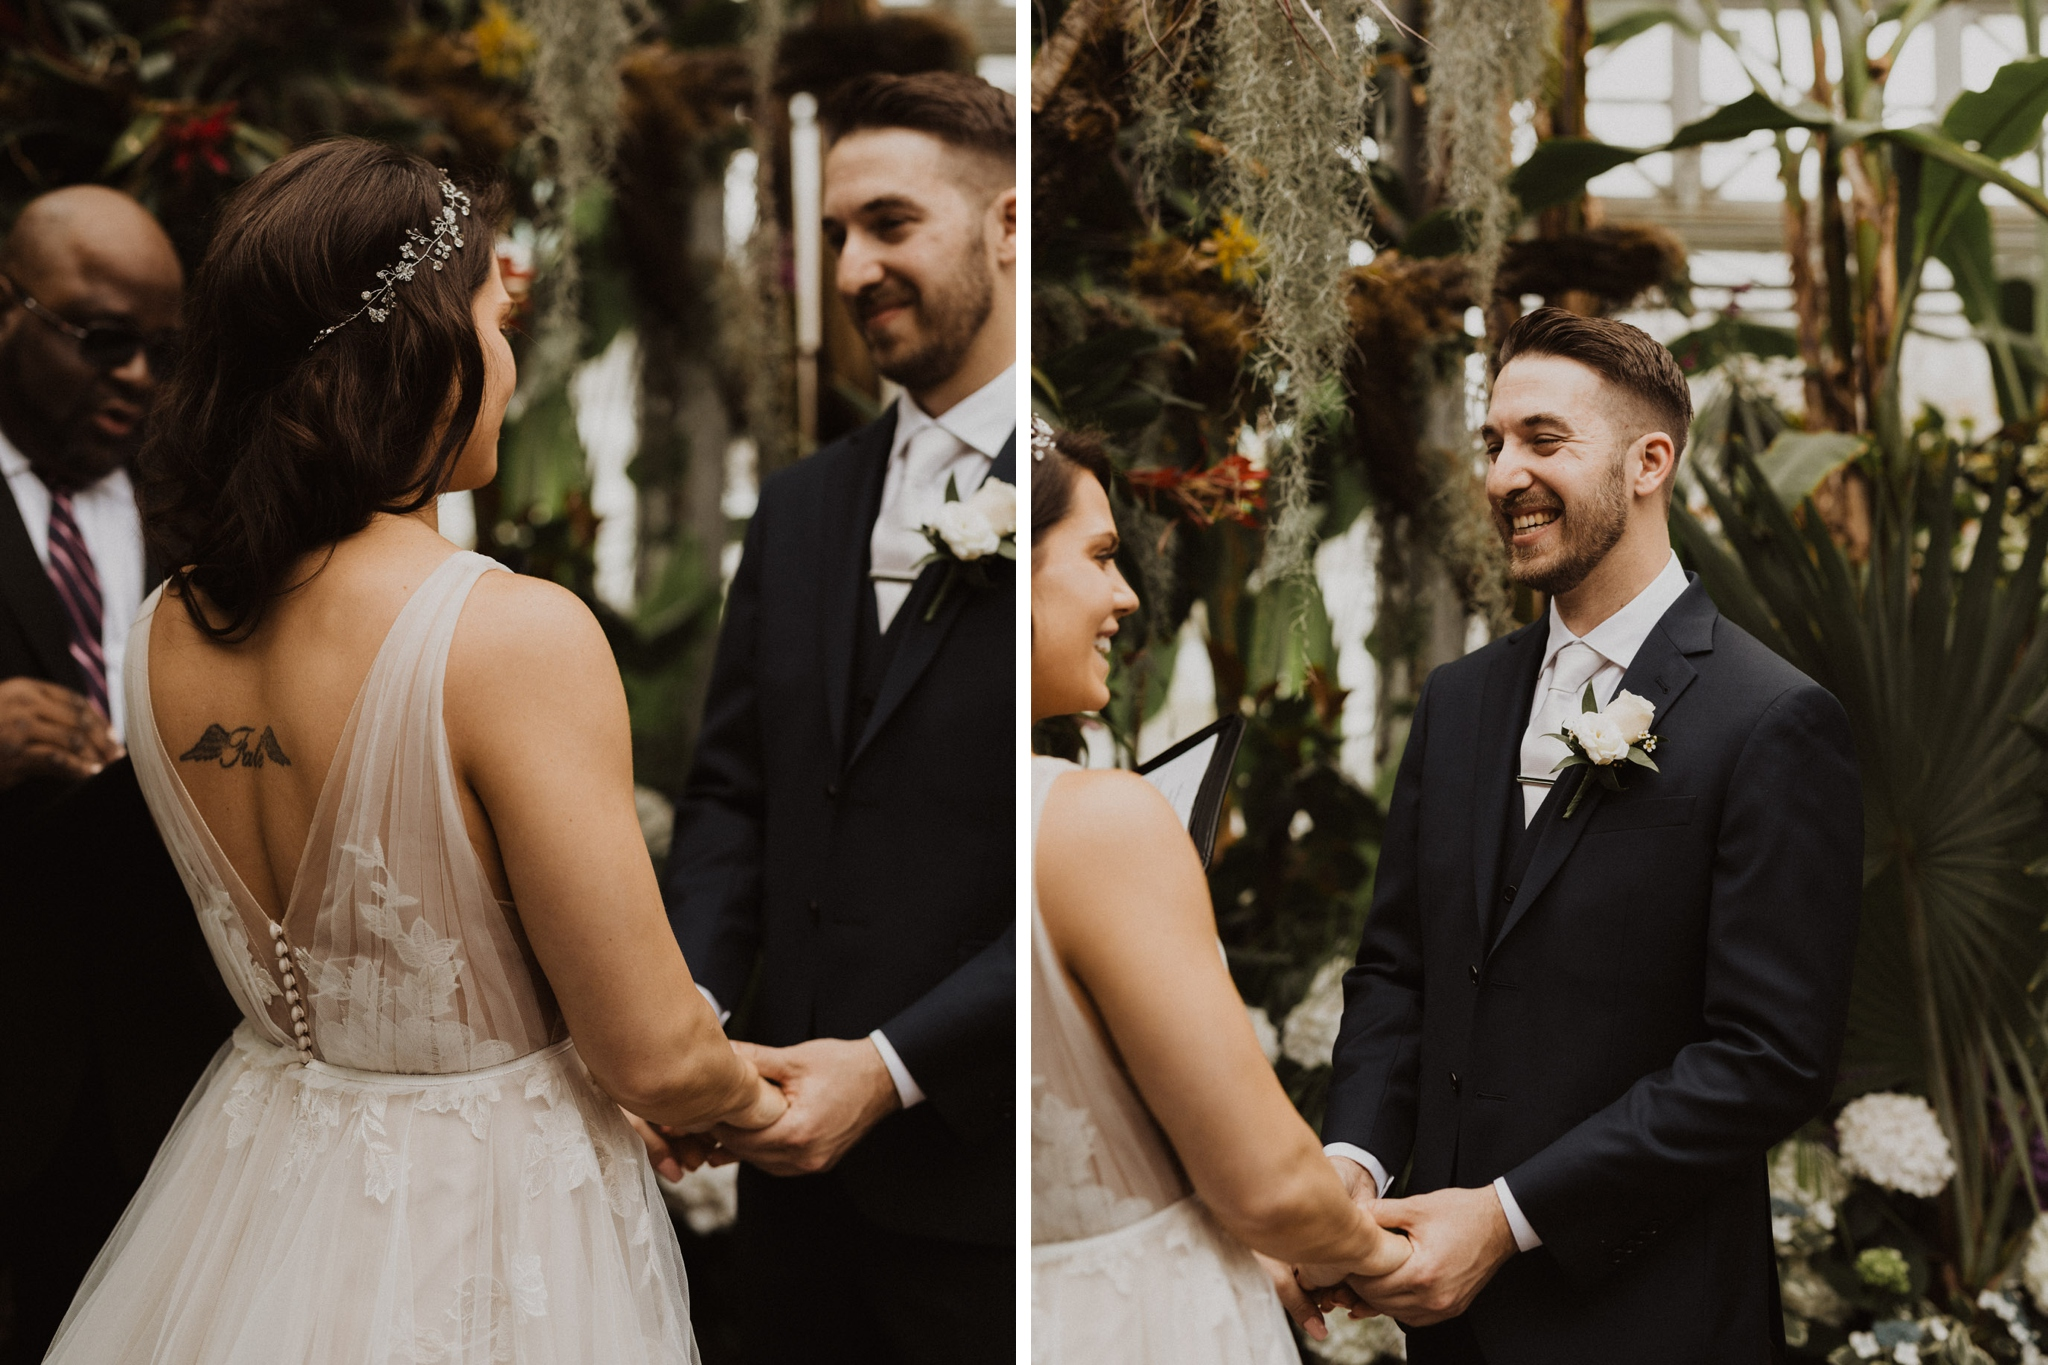 Greenhouse Elopement Allan Gardens Toronto - holding hands at the alter